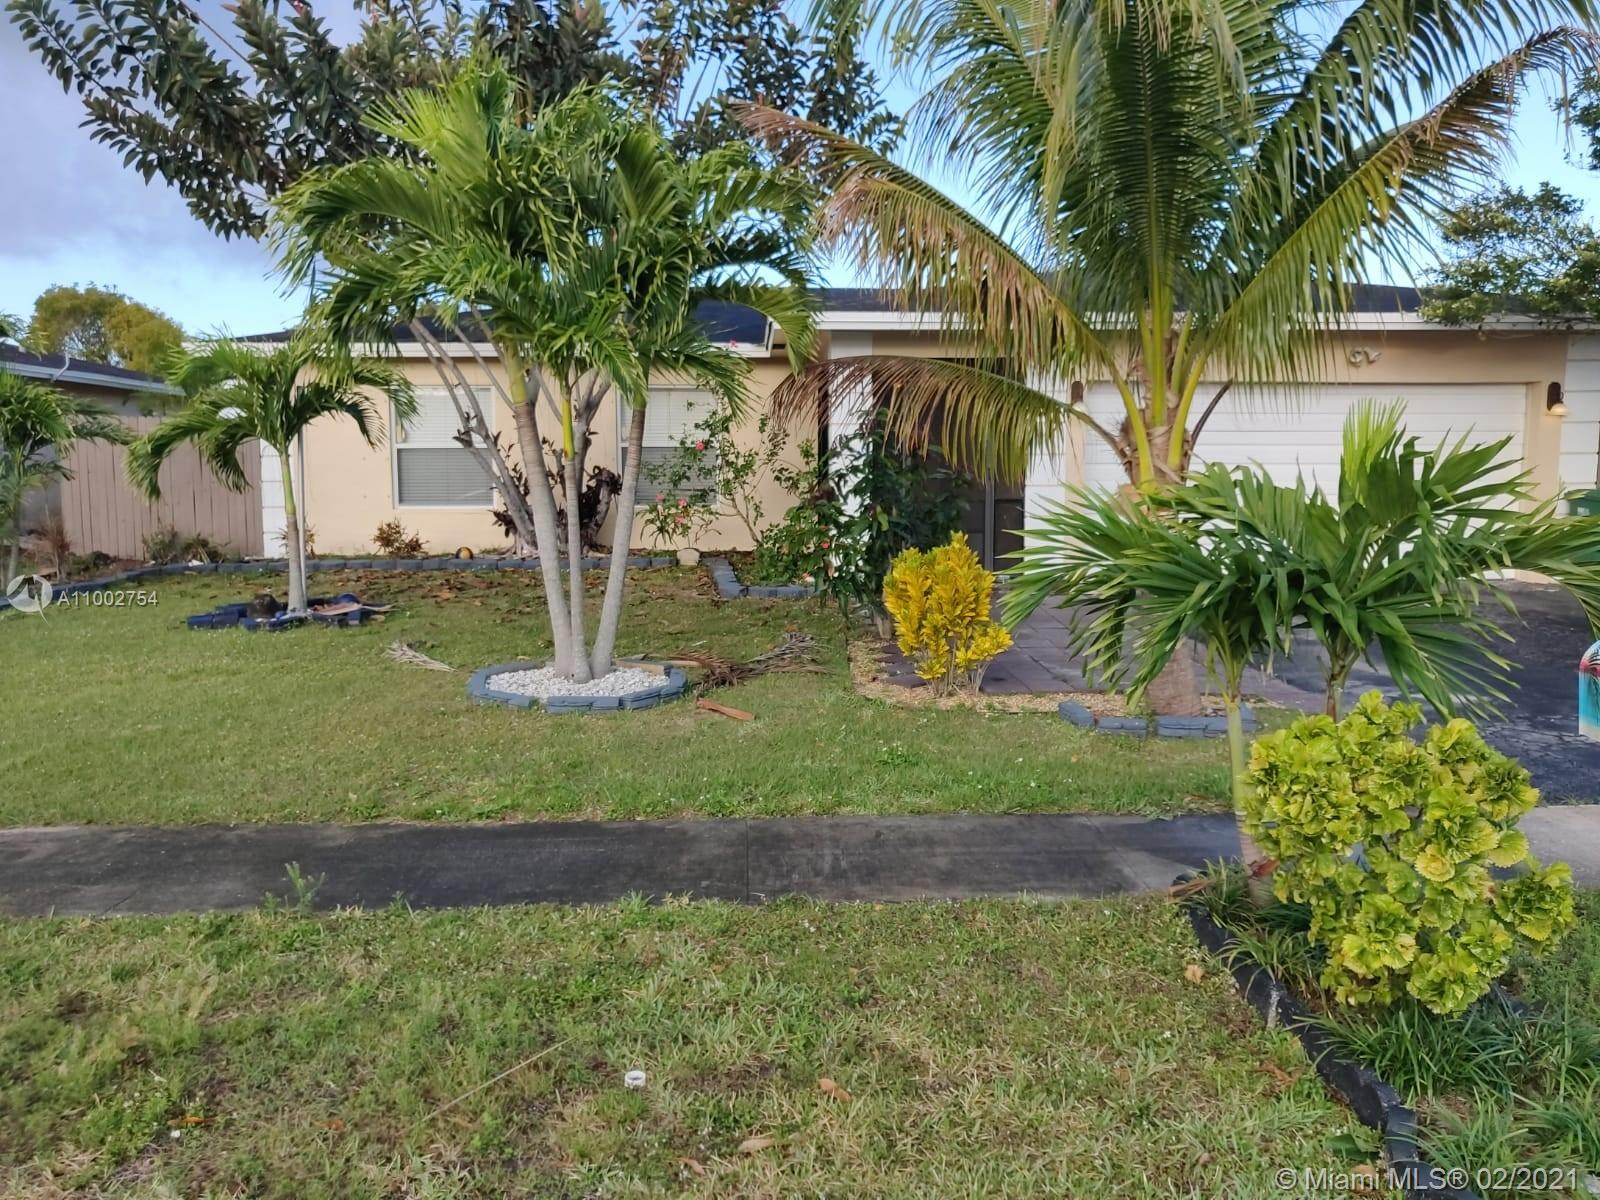 Beautiful, just renovated, bright and spacious 3 bedroom 2 bathroom single family home with 2 car garage and outdoor pool. Laundry in garage. Fenced yard. Great location. Move in ready. See pics. Move fast. Priced to sell.